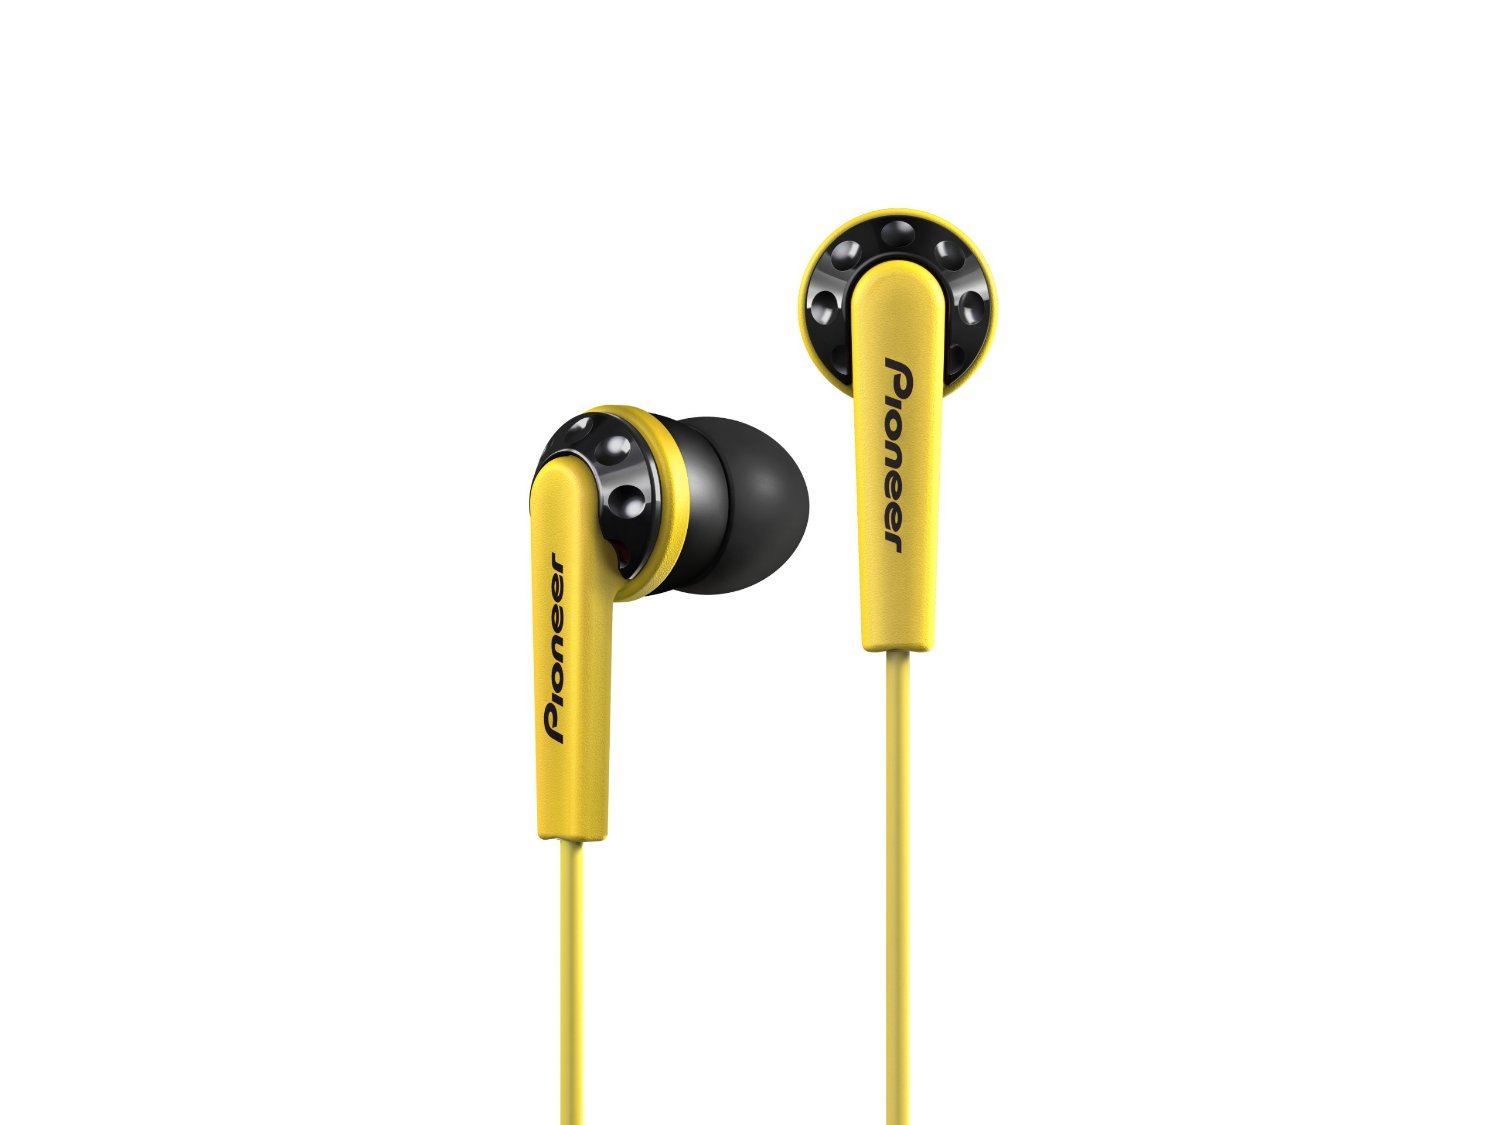 SE-CL711 Auscultadores in-ear PIONEER